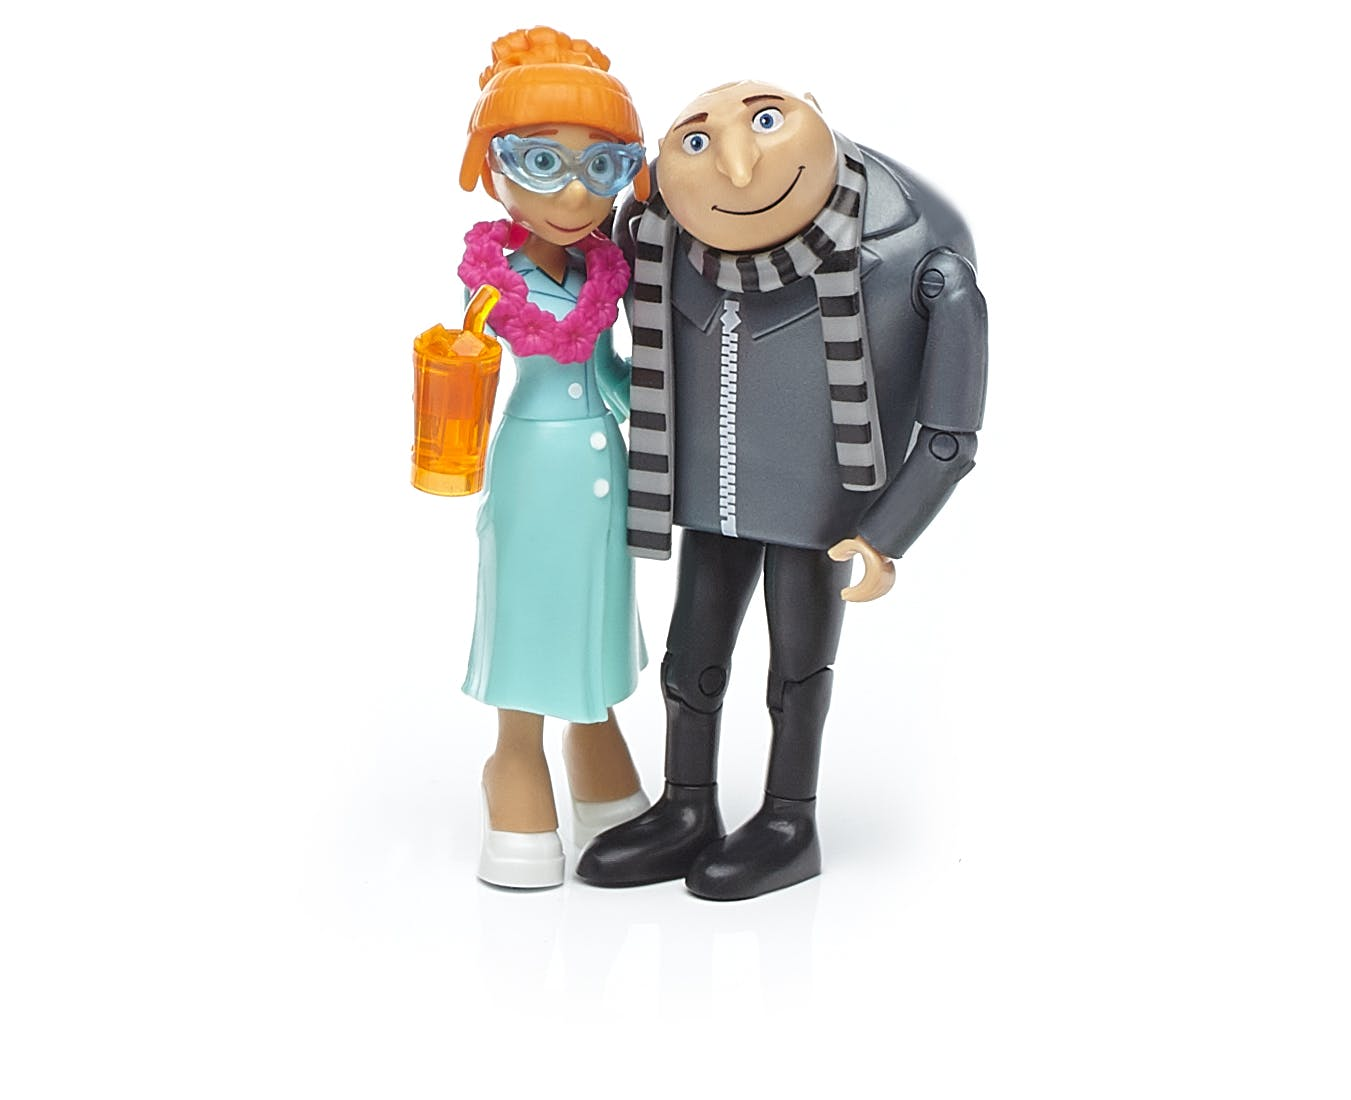 Gru and Lucy Mega construx